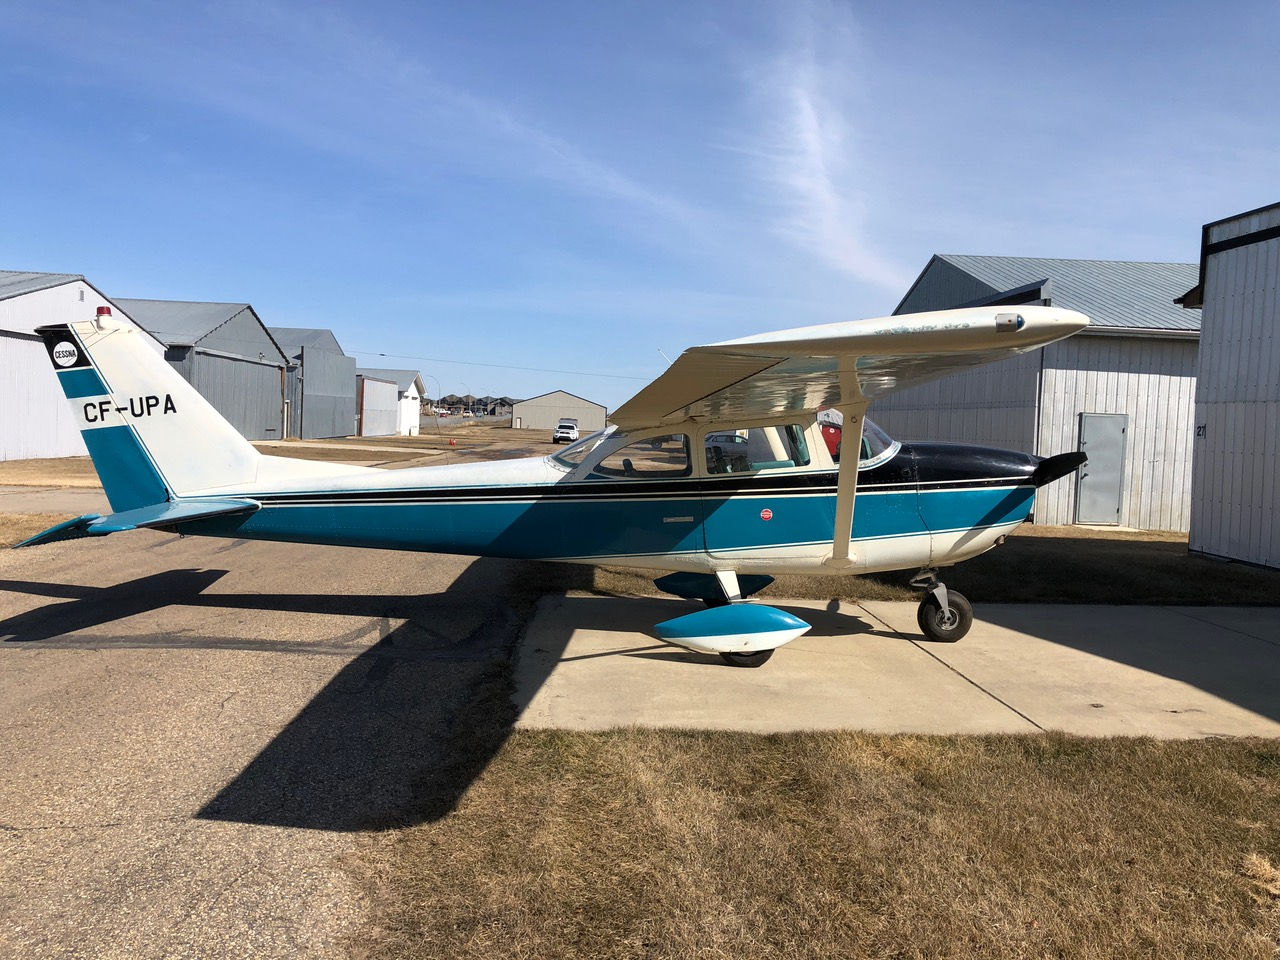 Aircraft Listing - Mooney M20F listed for sale